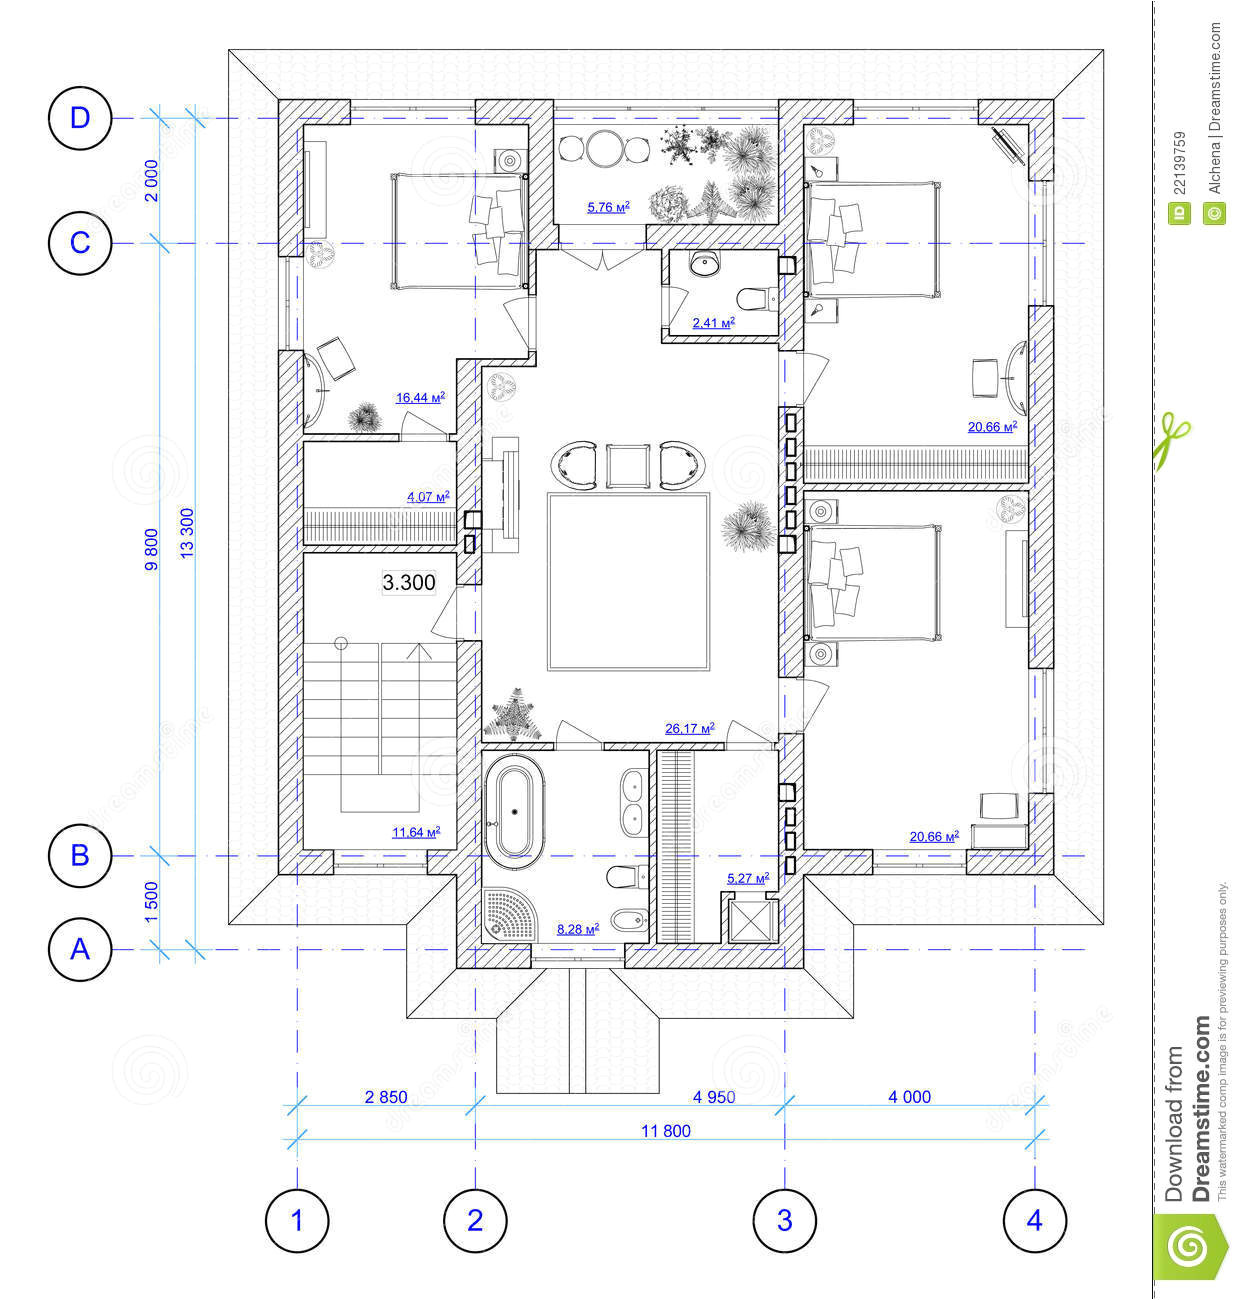 royalty free stock images architectural plan 2 floor house image22139759